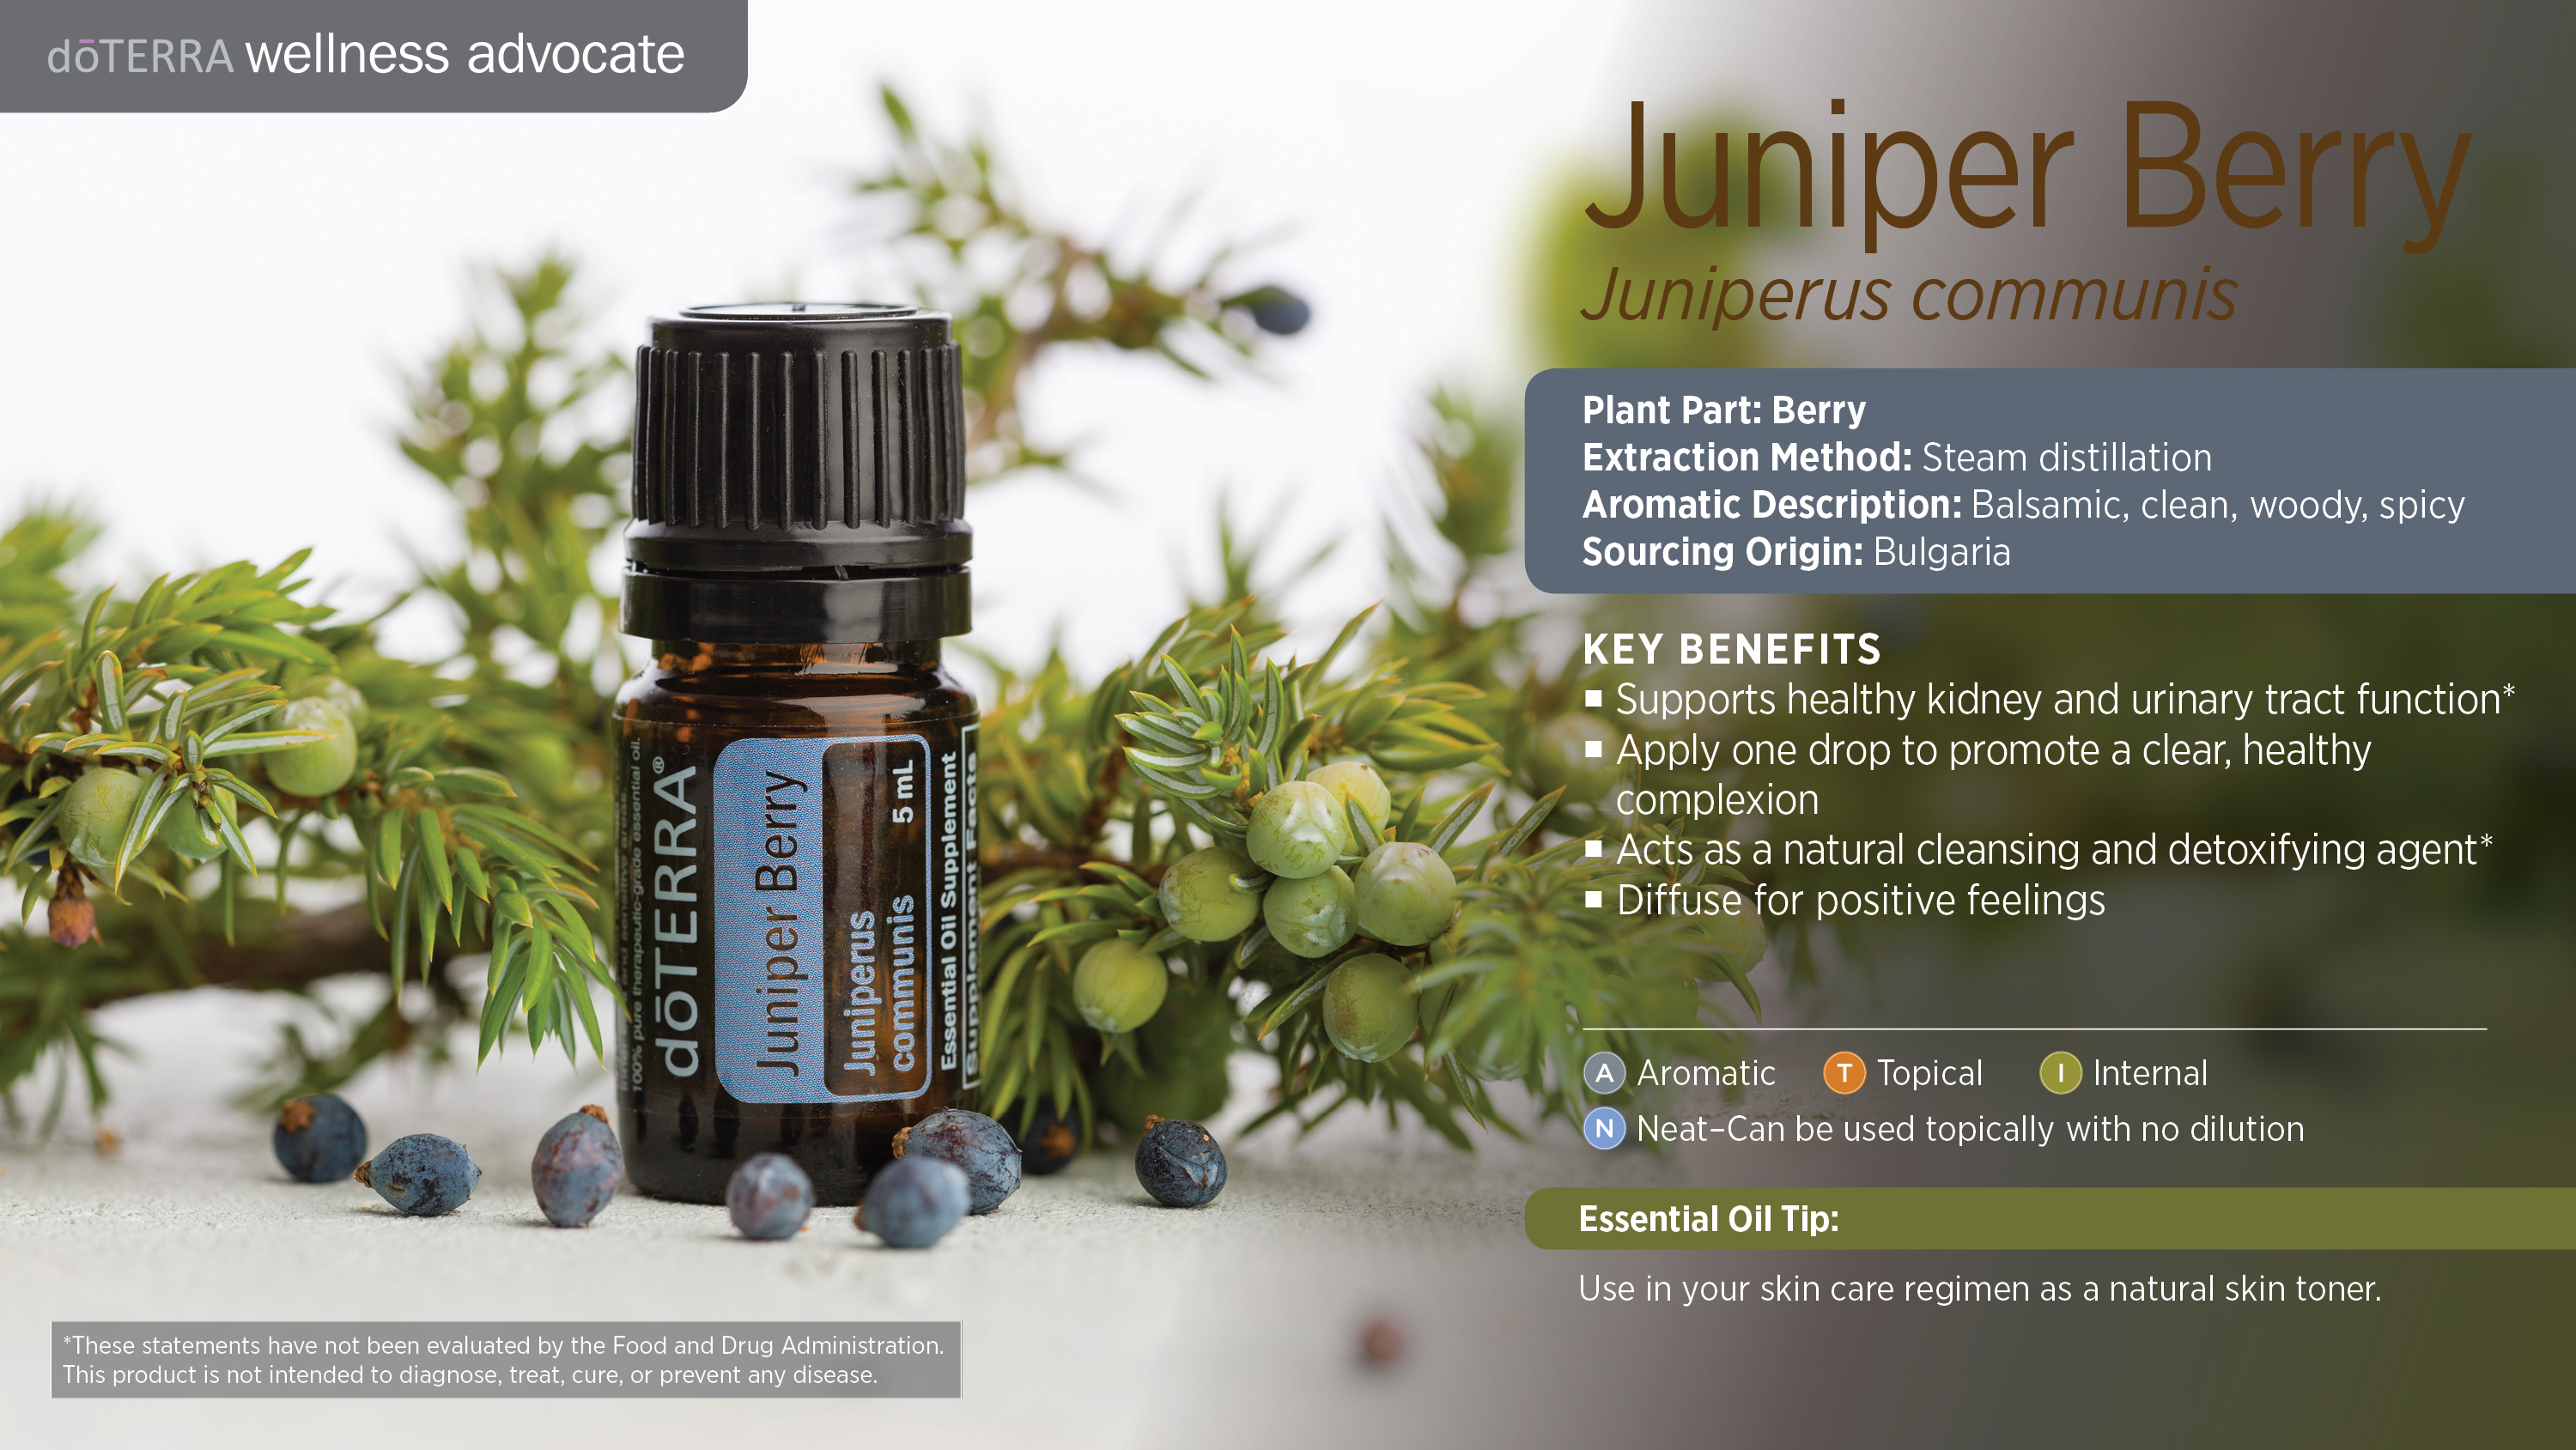 wa-juniper-berry